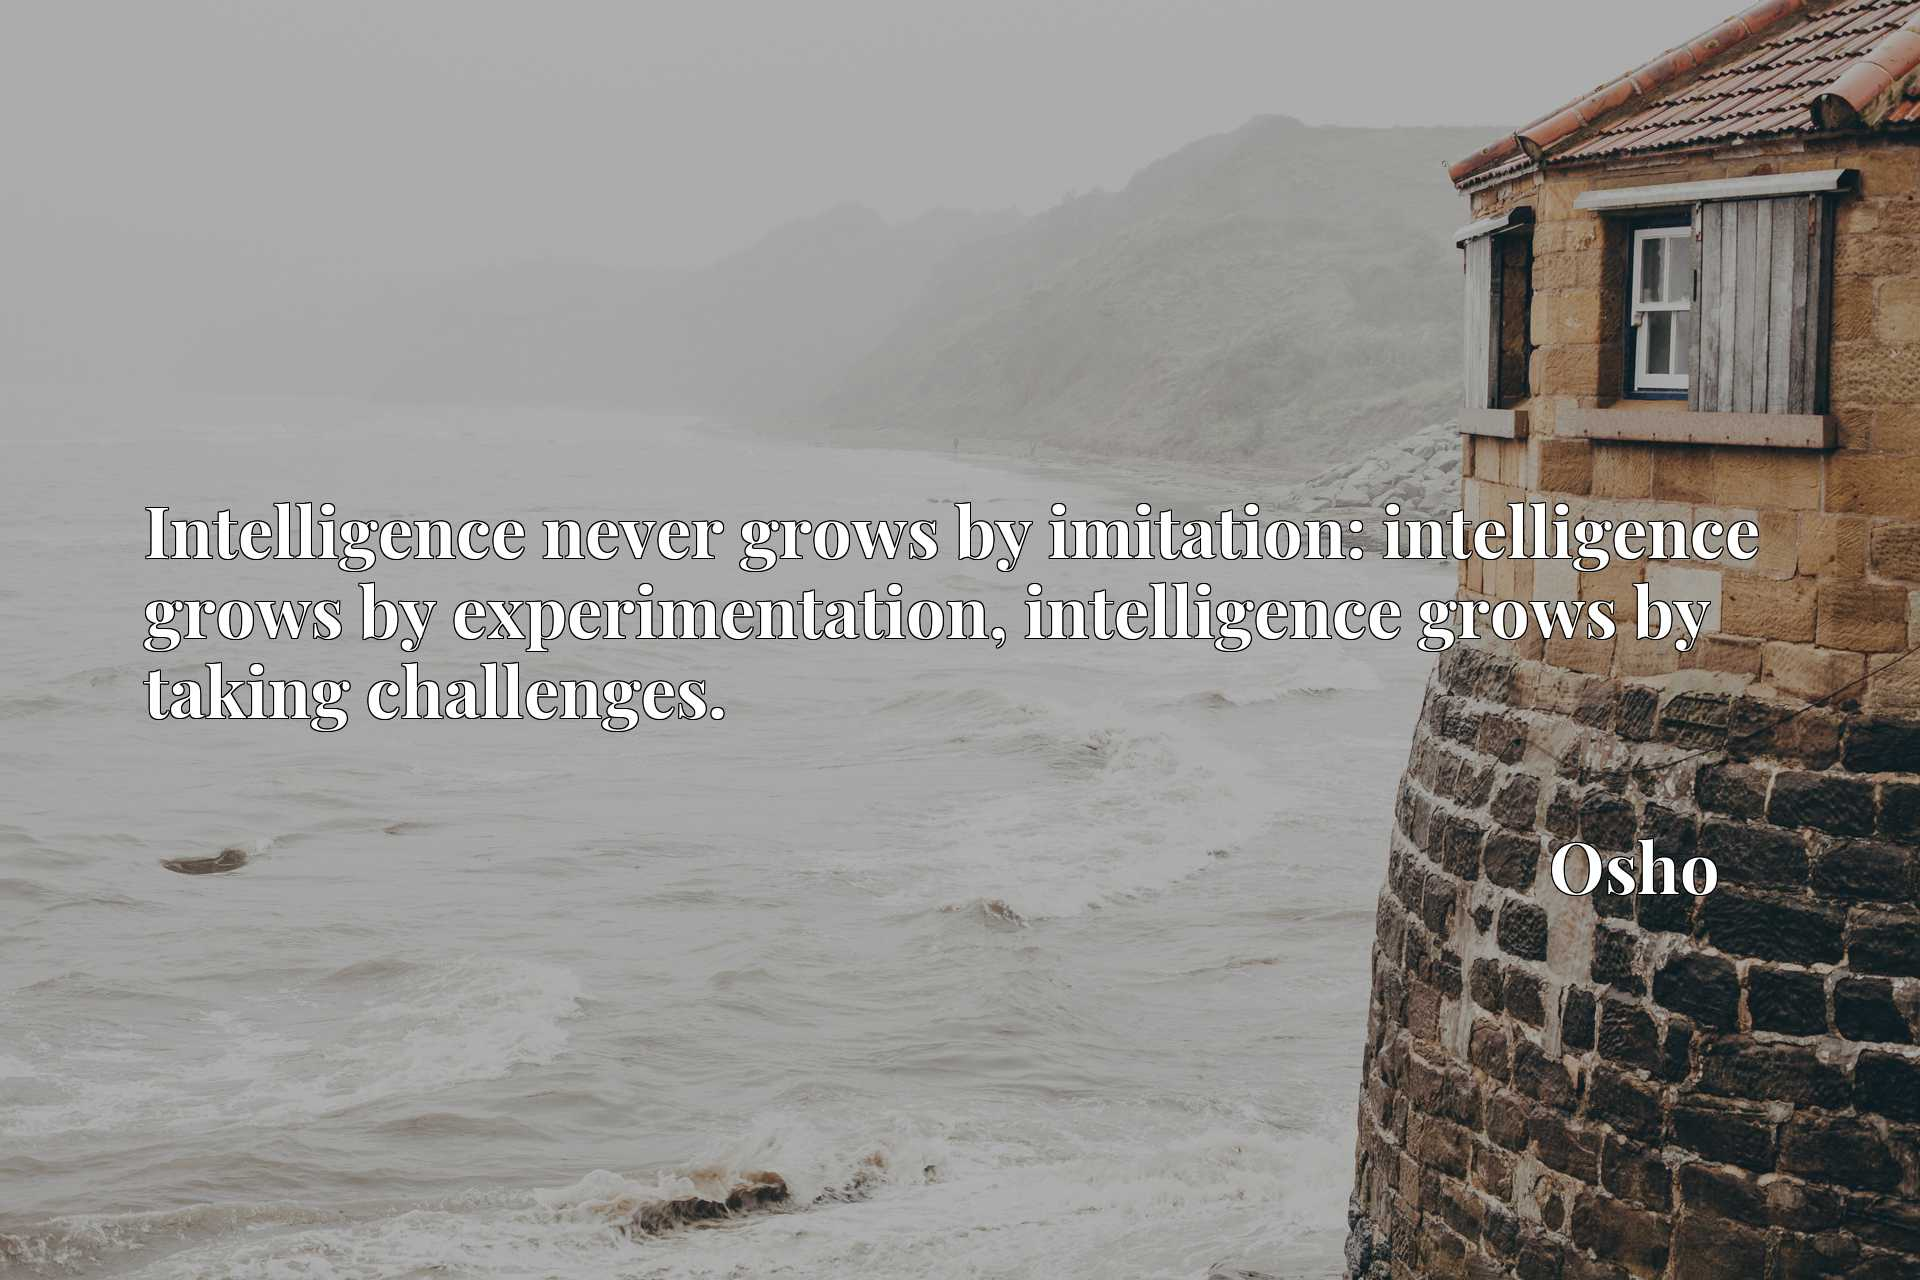 Intelligence never grows by imitation: intelligence grows by experimentation, intelligence grows by taking challenges.